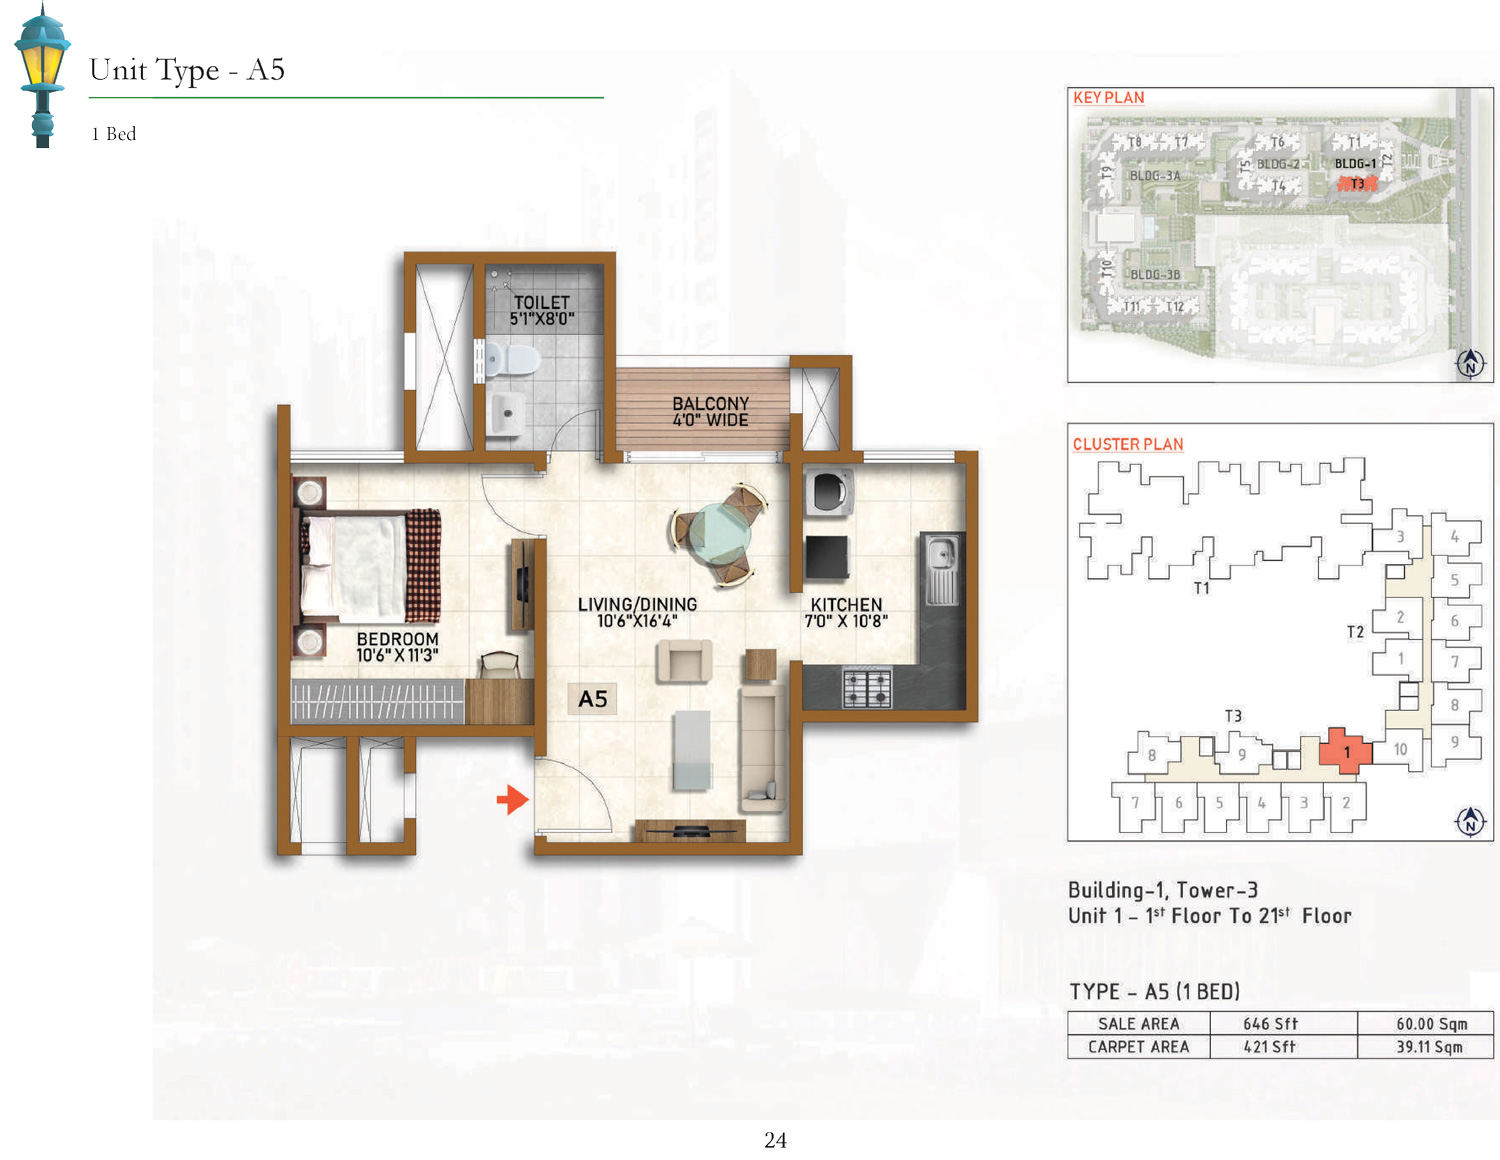 Type A5 - 646 Sq Ft